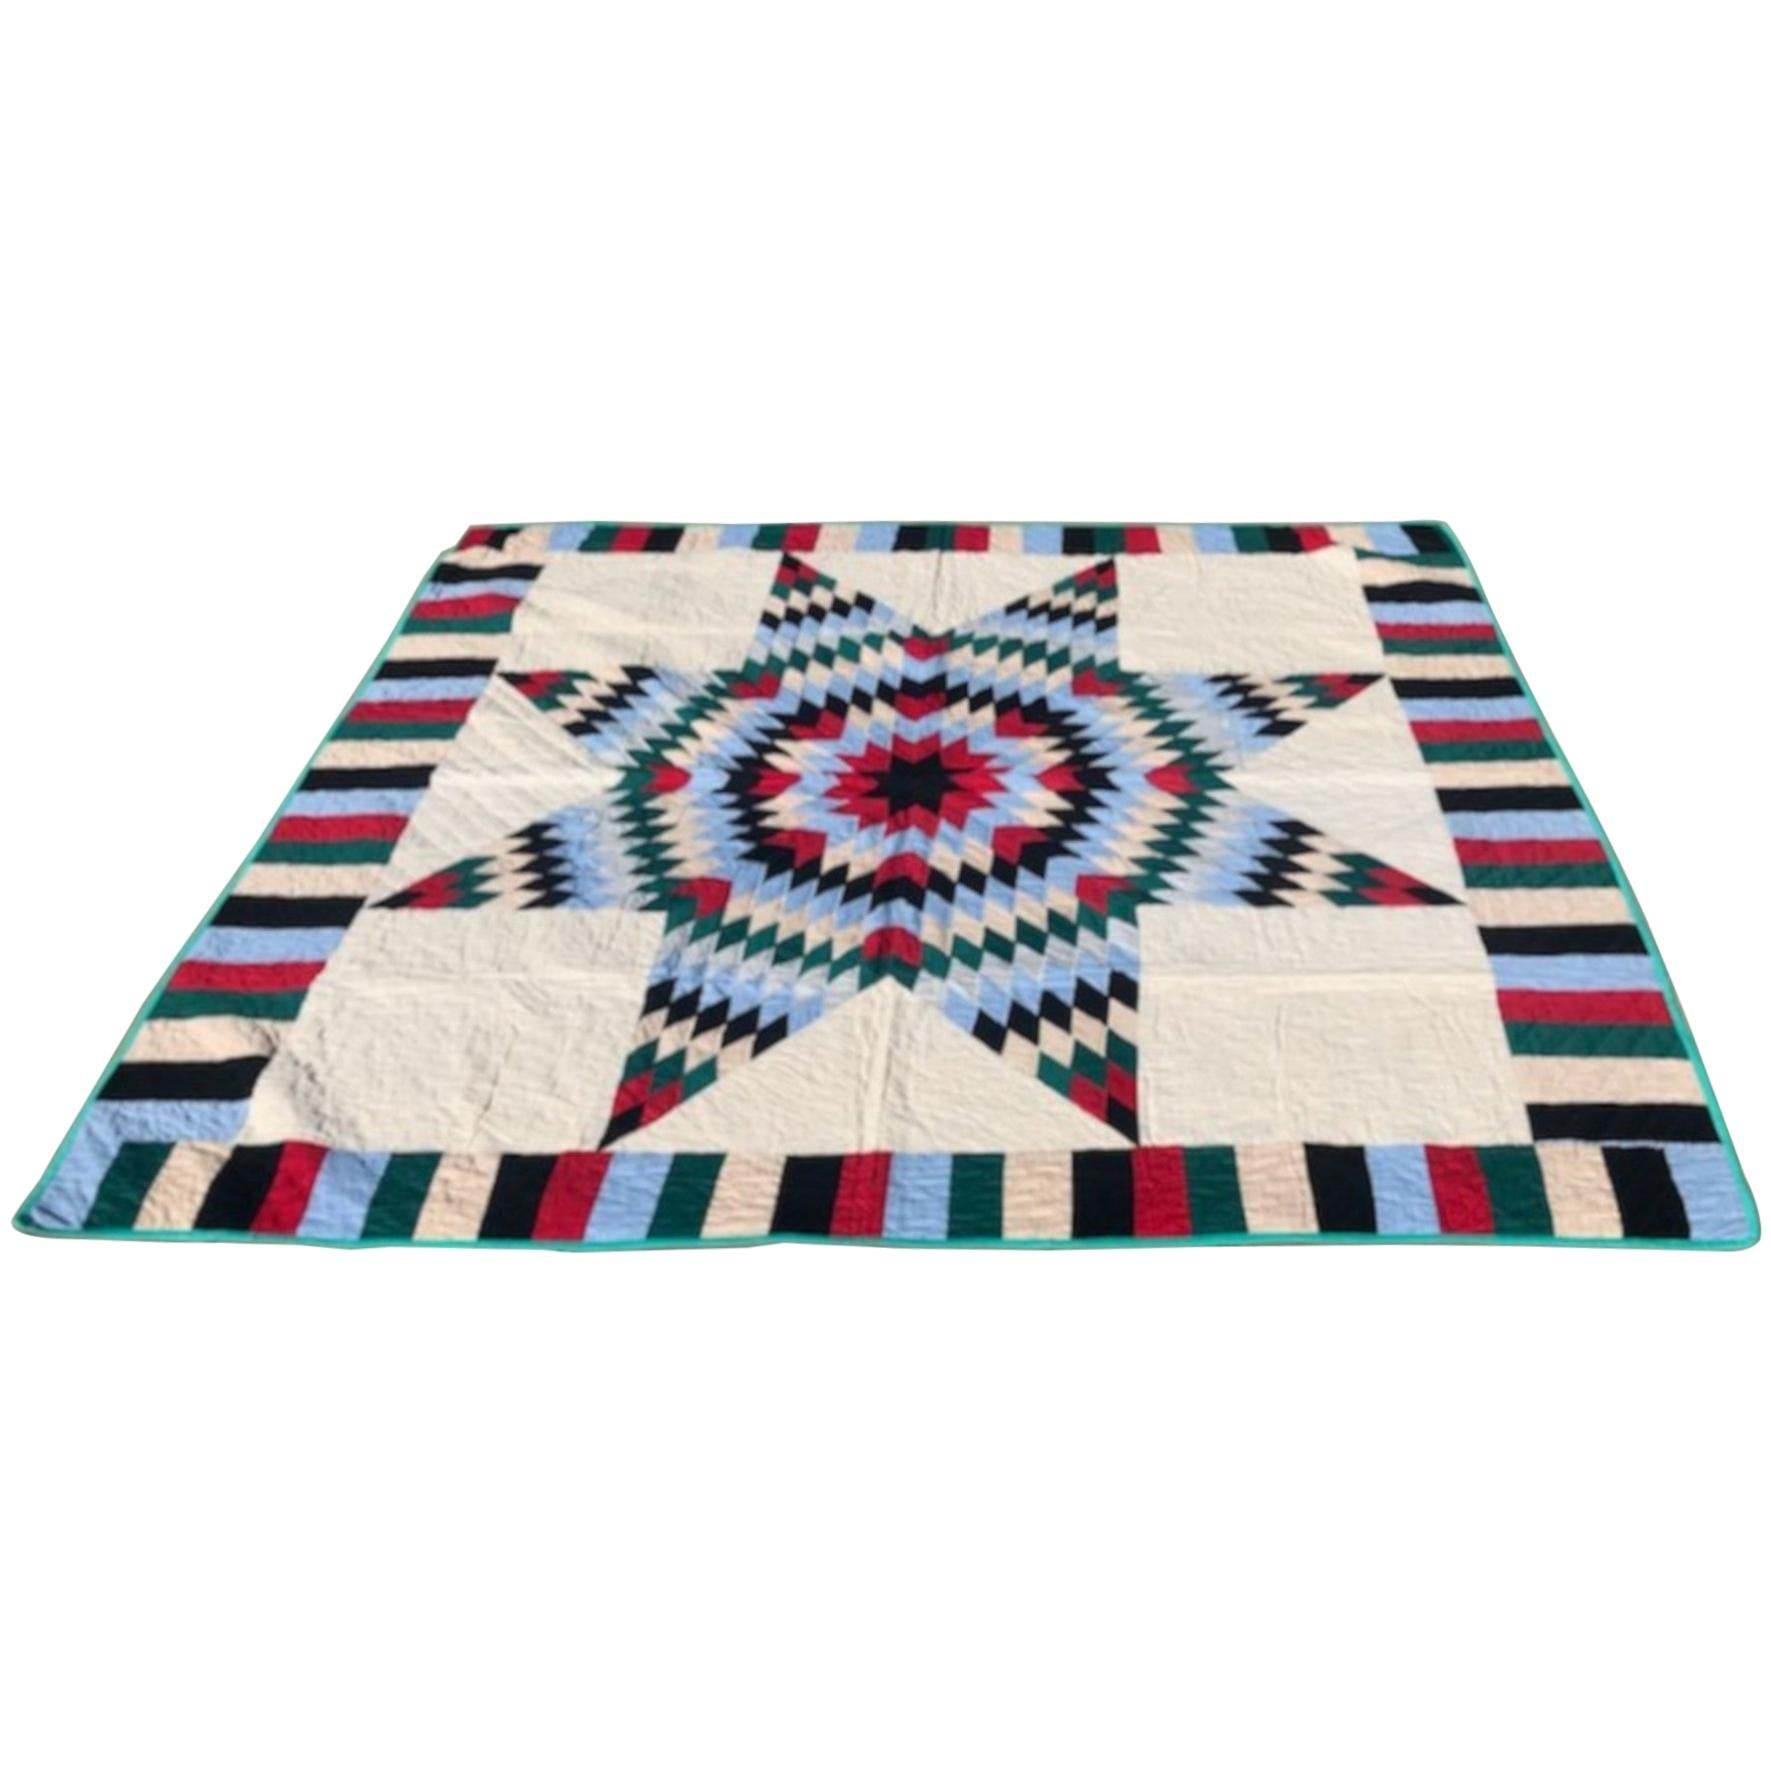 Antique Quilt, 20th Century Star Quilt With Striped Border